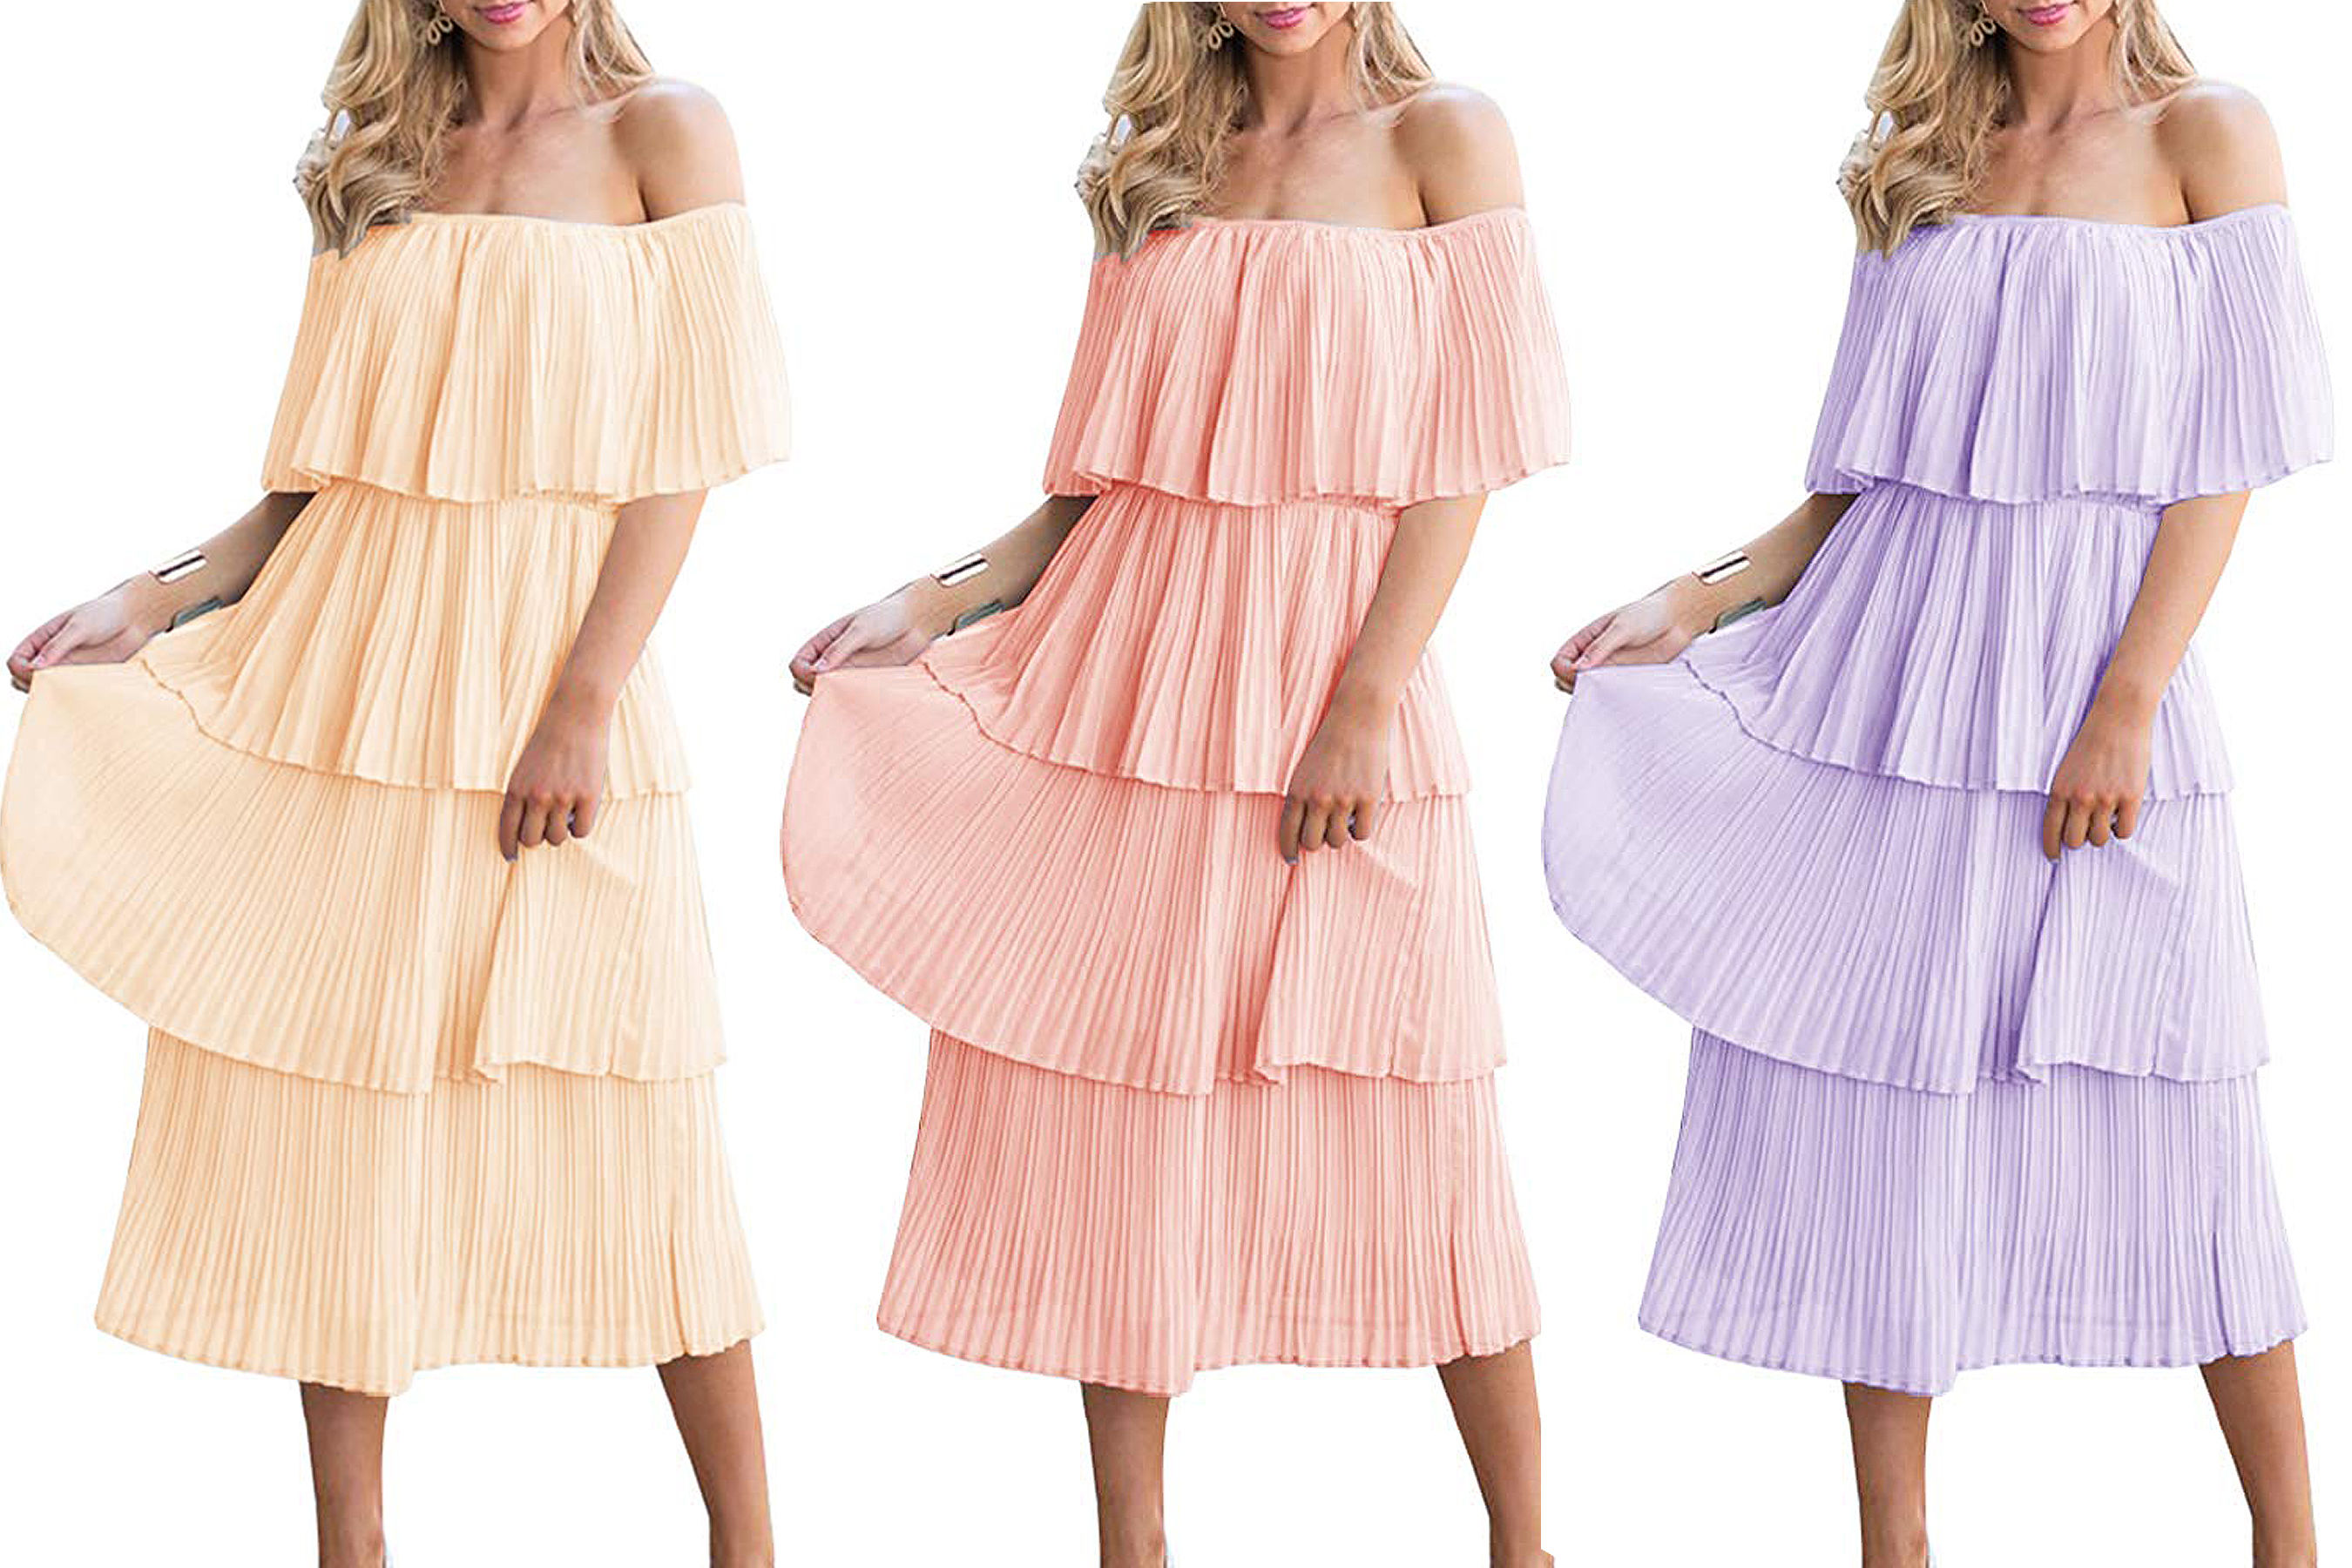 This Viral Dress Is the Wedding Guest Dress of the Summer — and It's Less Than $30 on Amazon